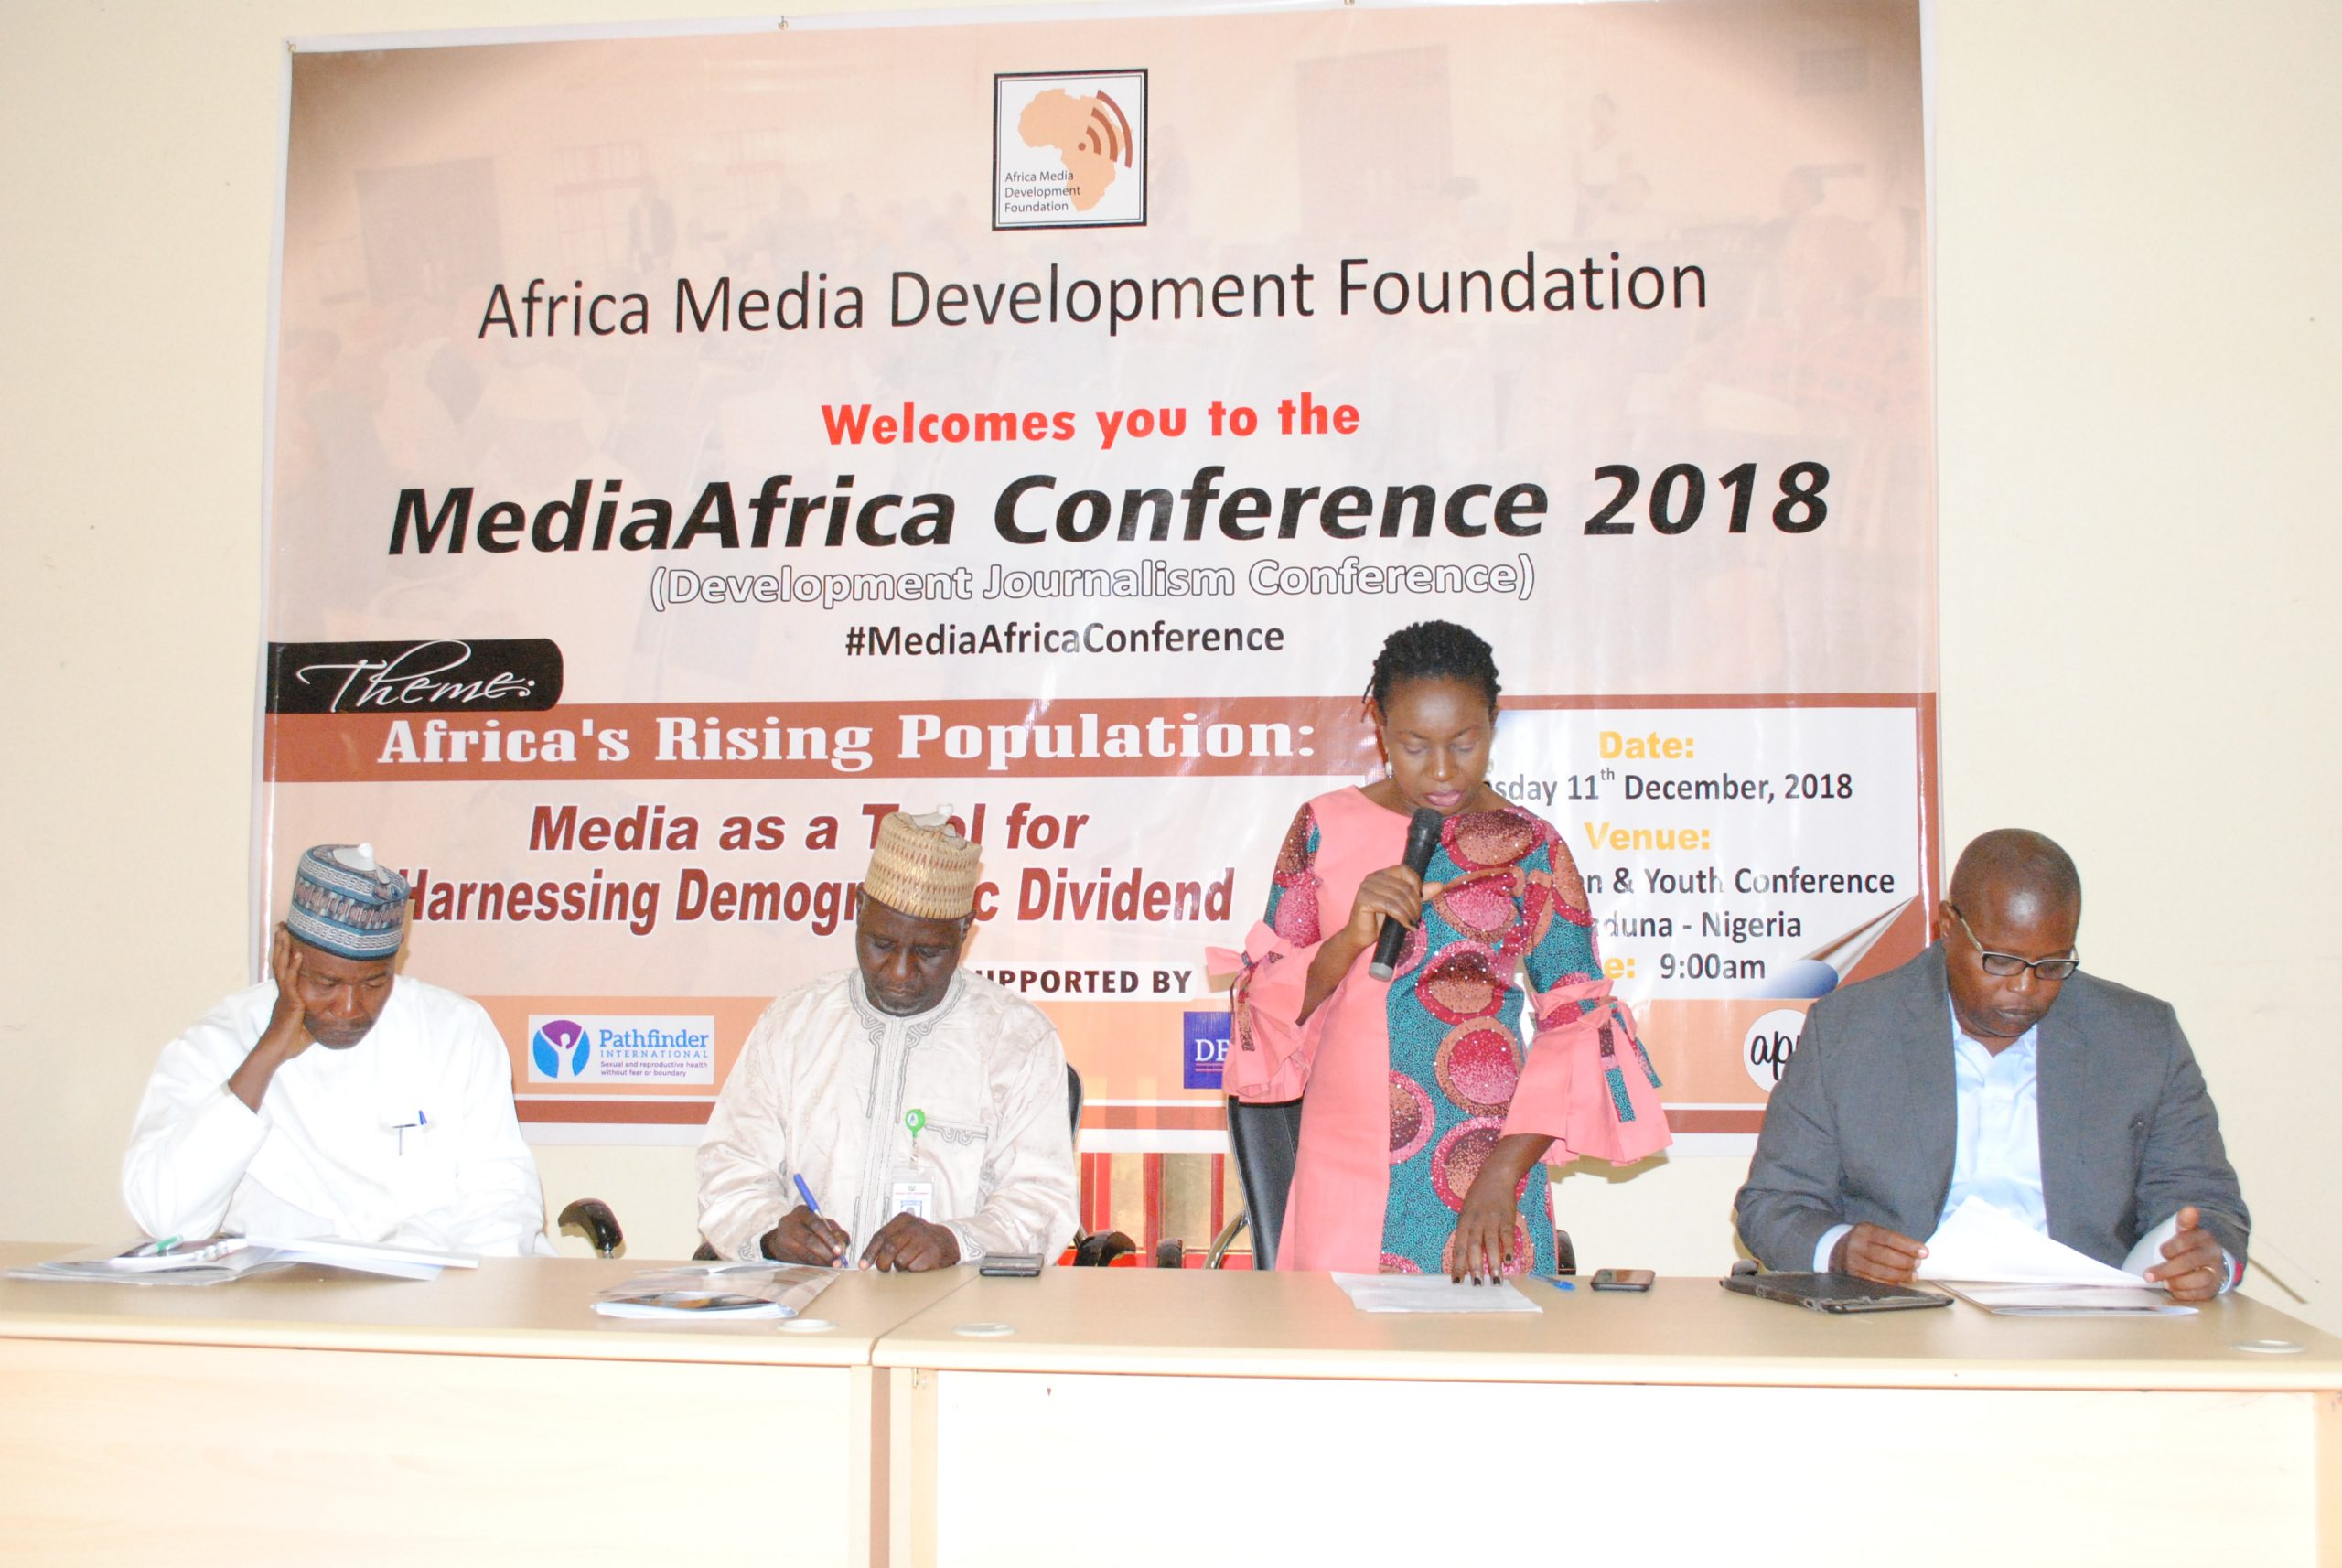 2018 MediaAfrica Conference